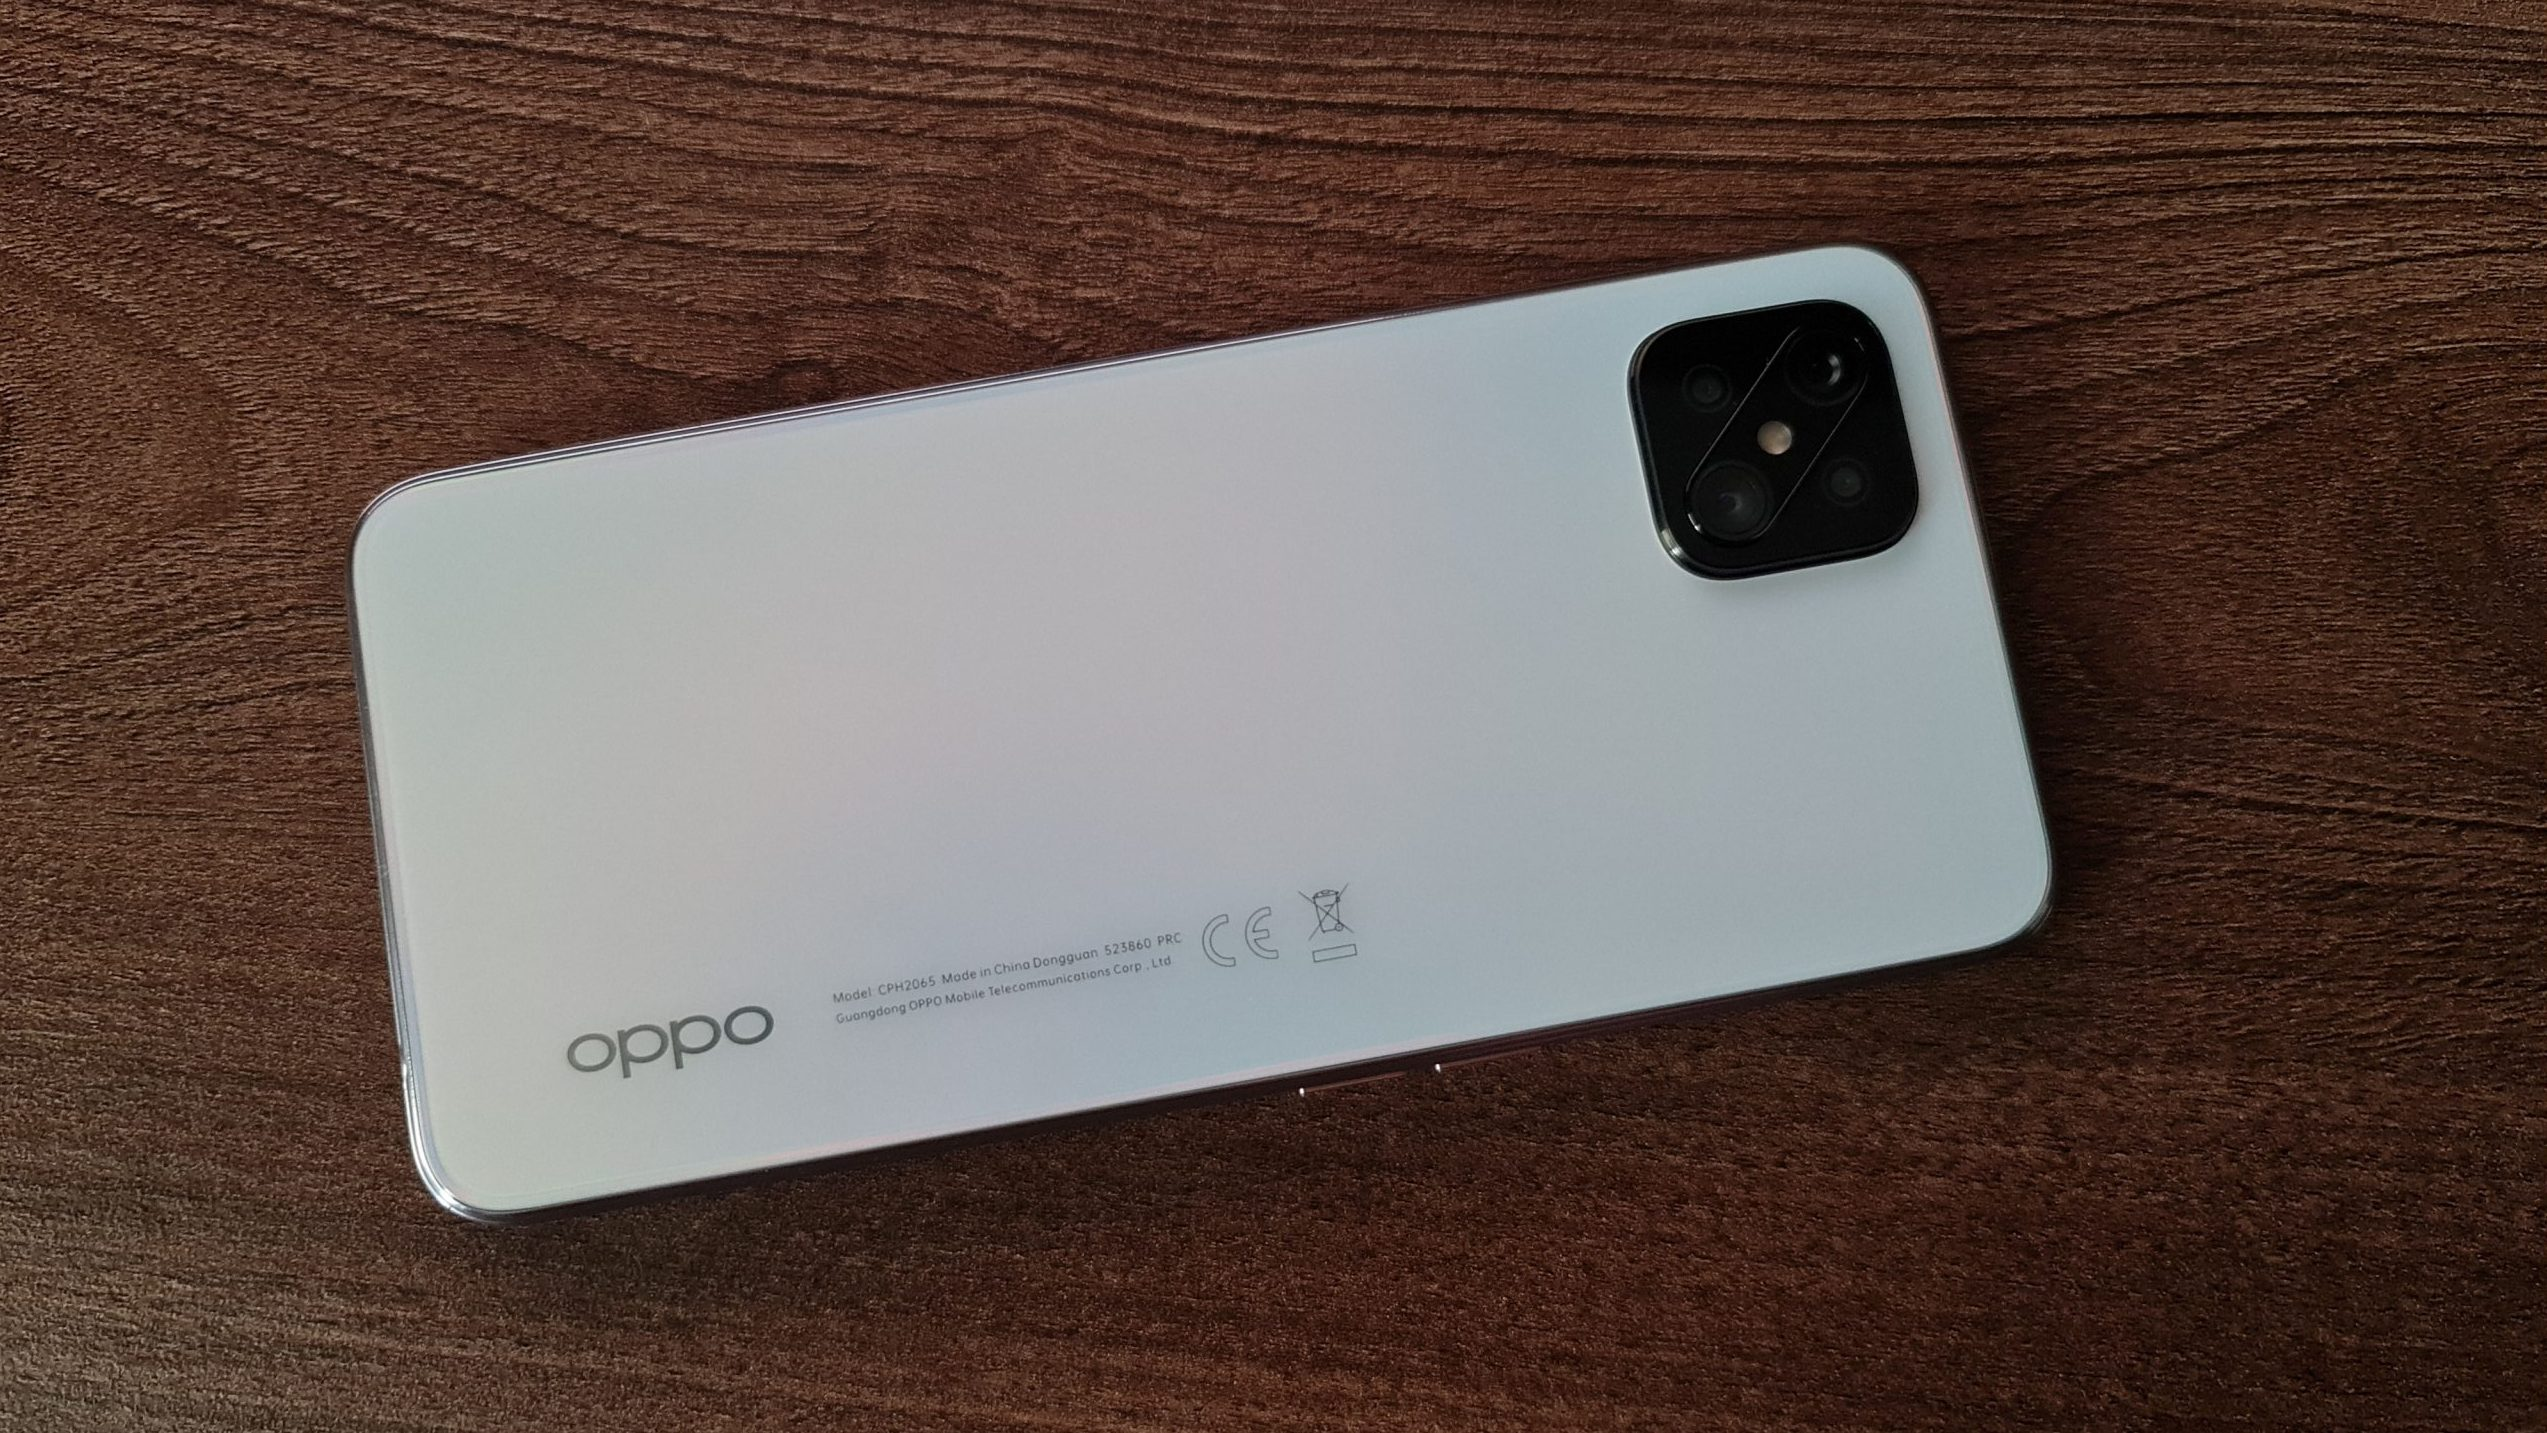 Review OPPO Reno4 Z 5G